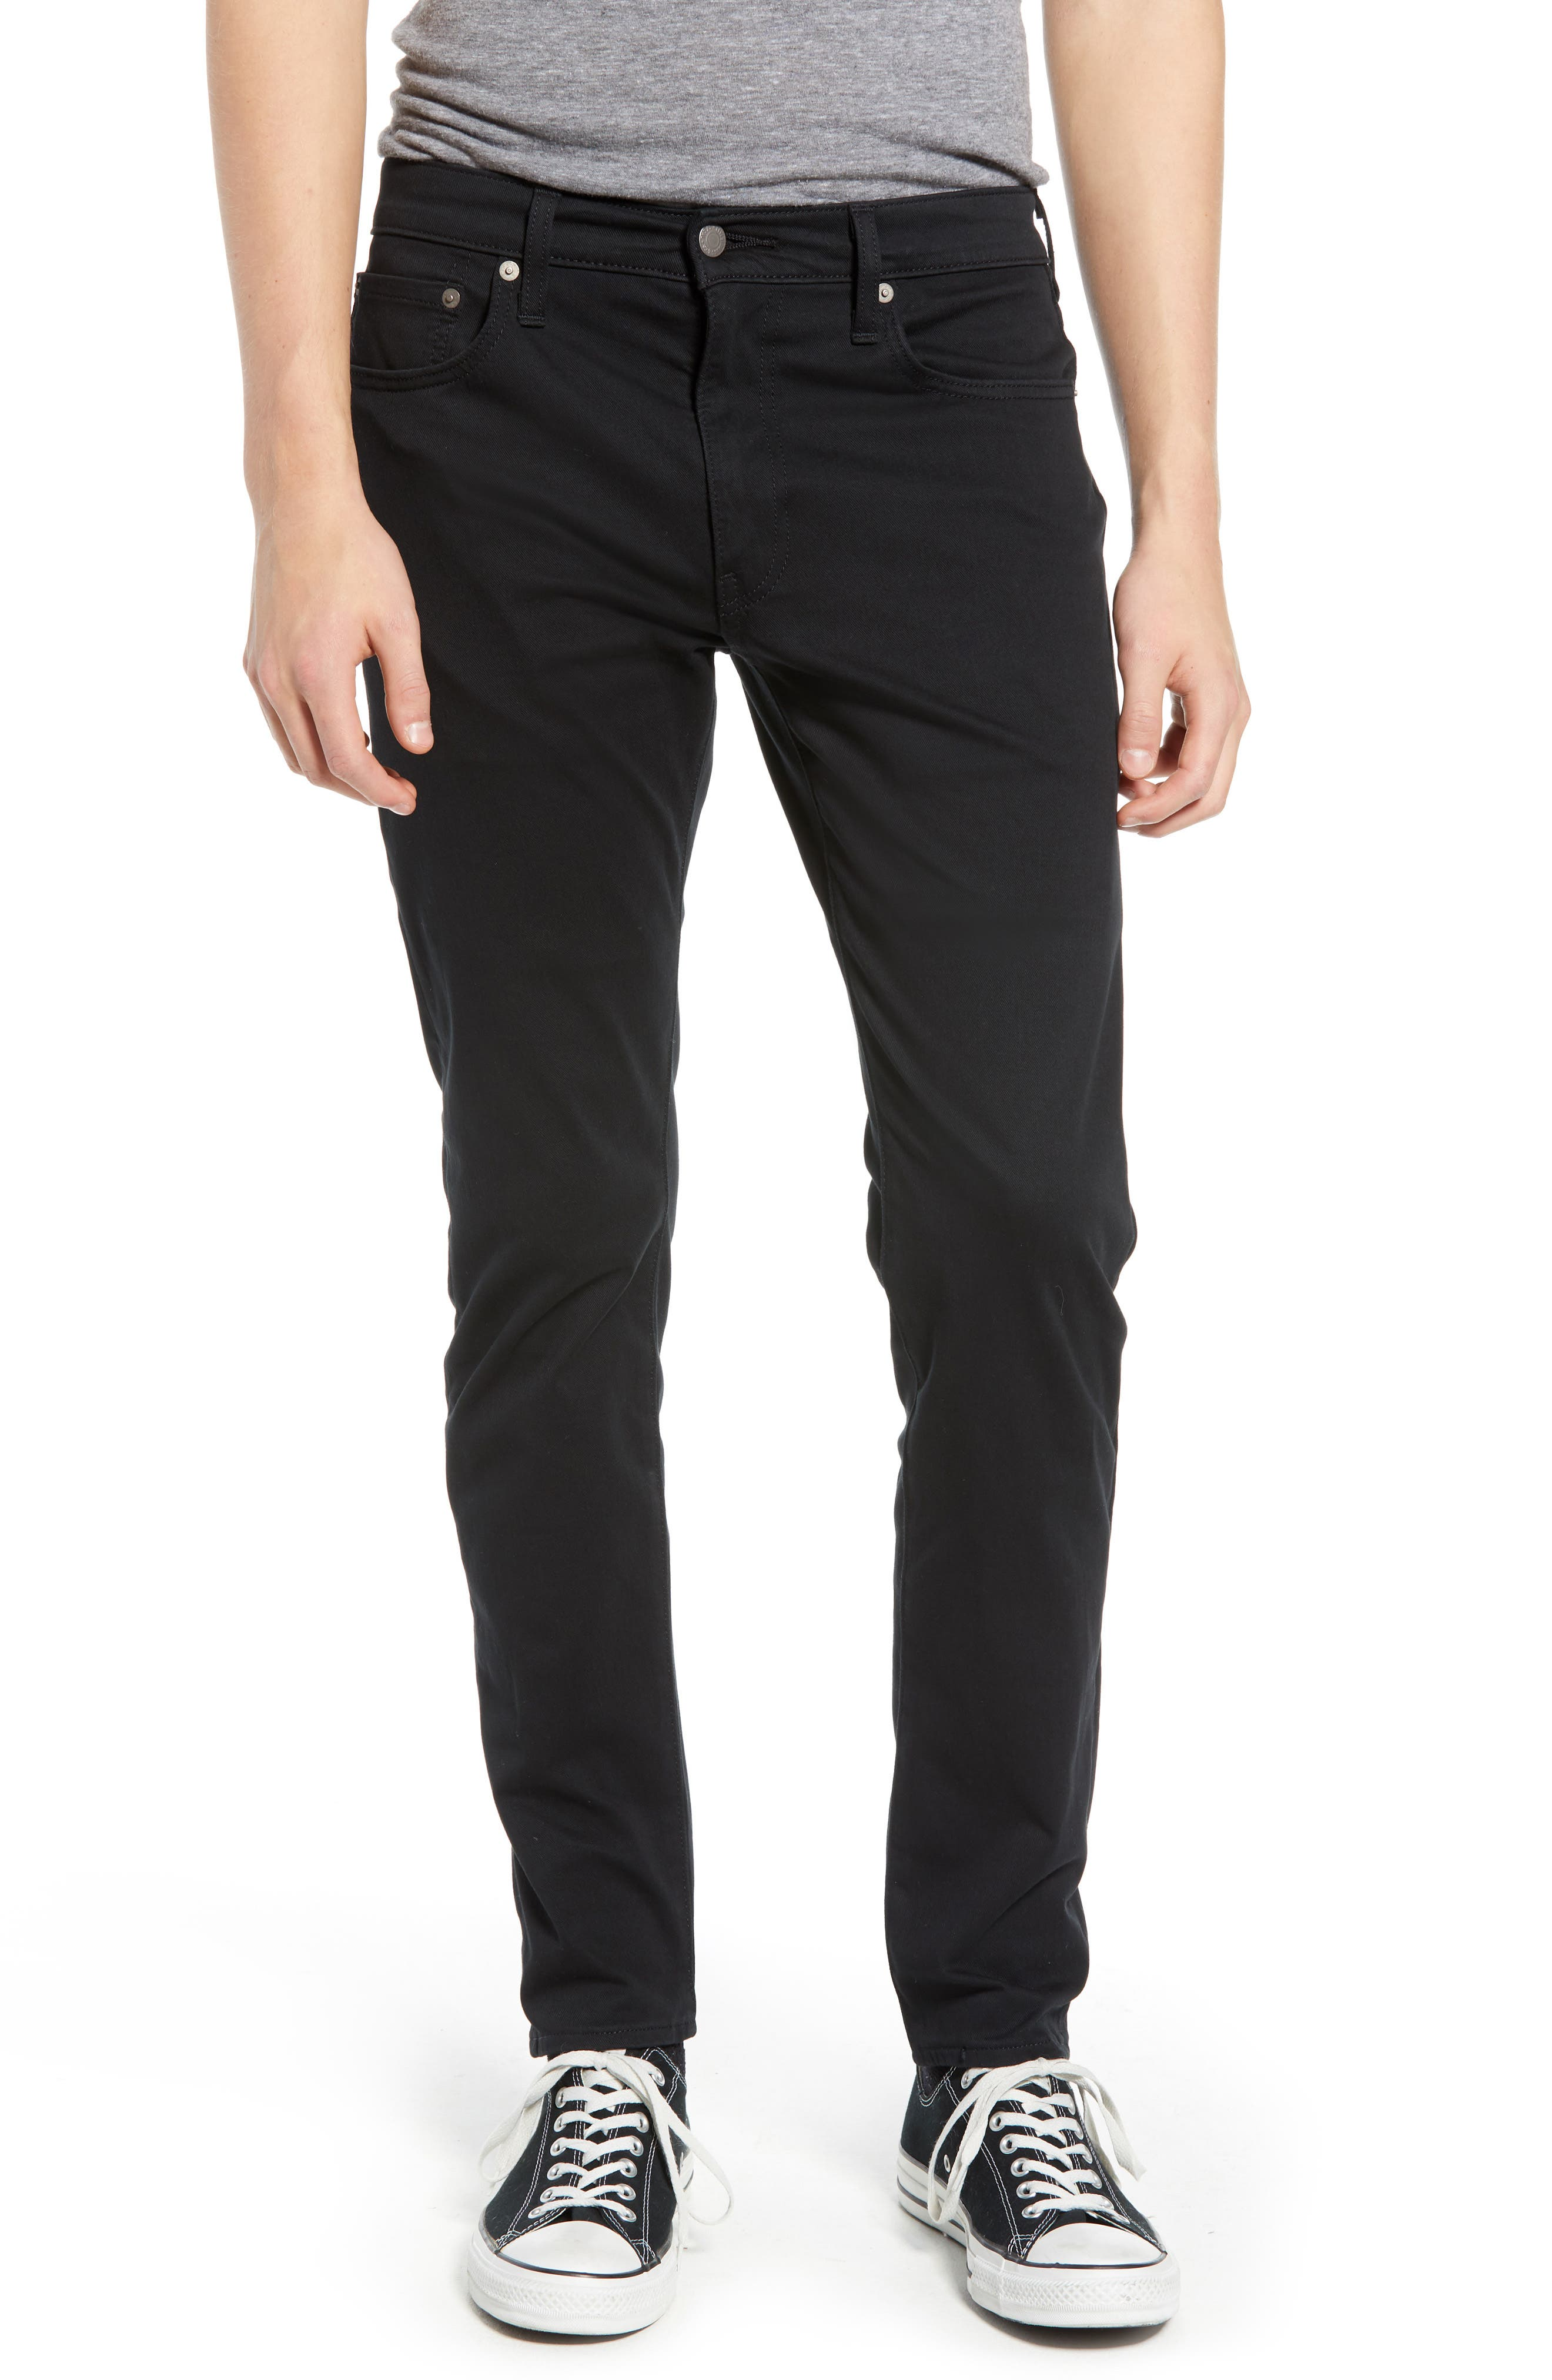 512<sup>™</sup> Slouchy Skinny Fit Twill Pants,                             Main thumbnail 1, color,                             BLACK WONDER KNIT TWILL